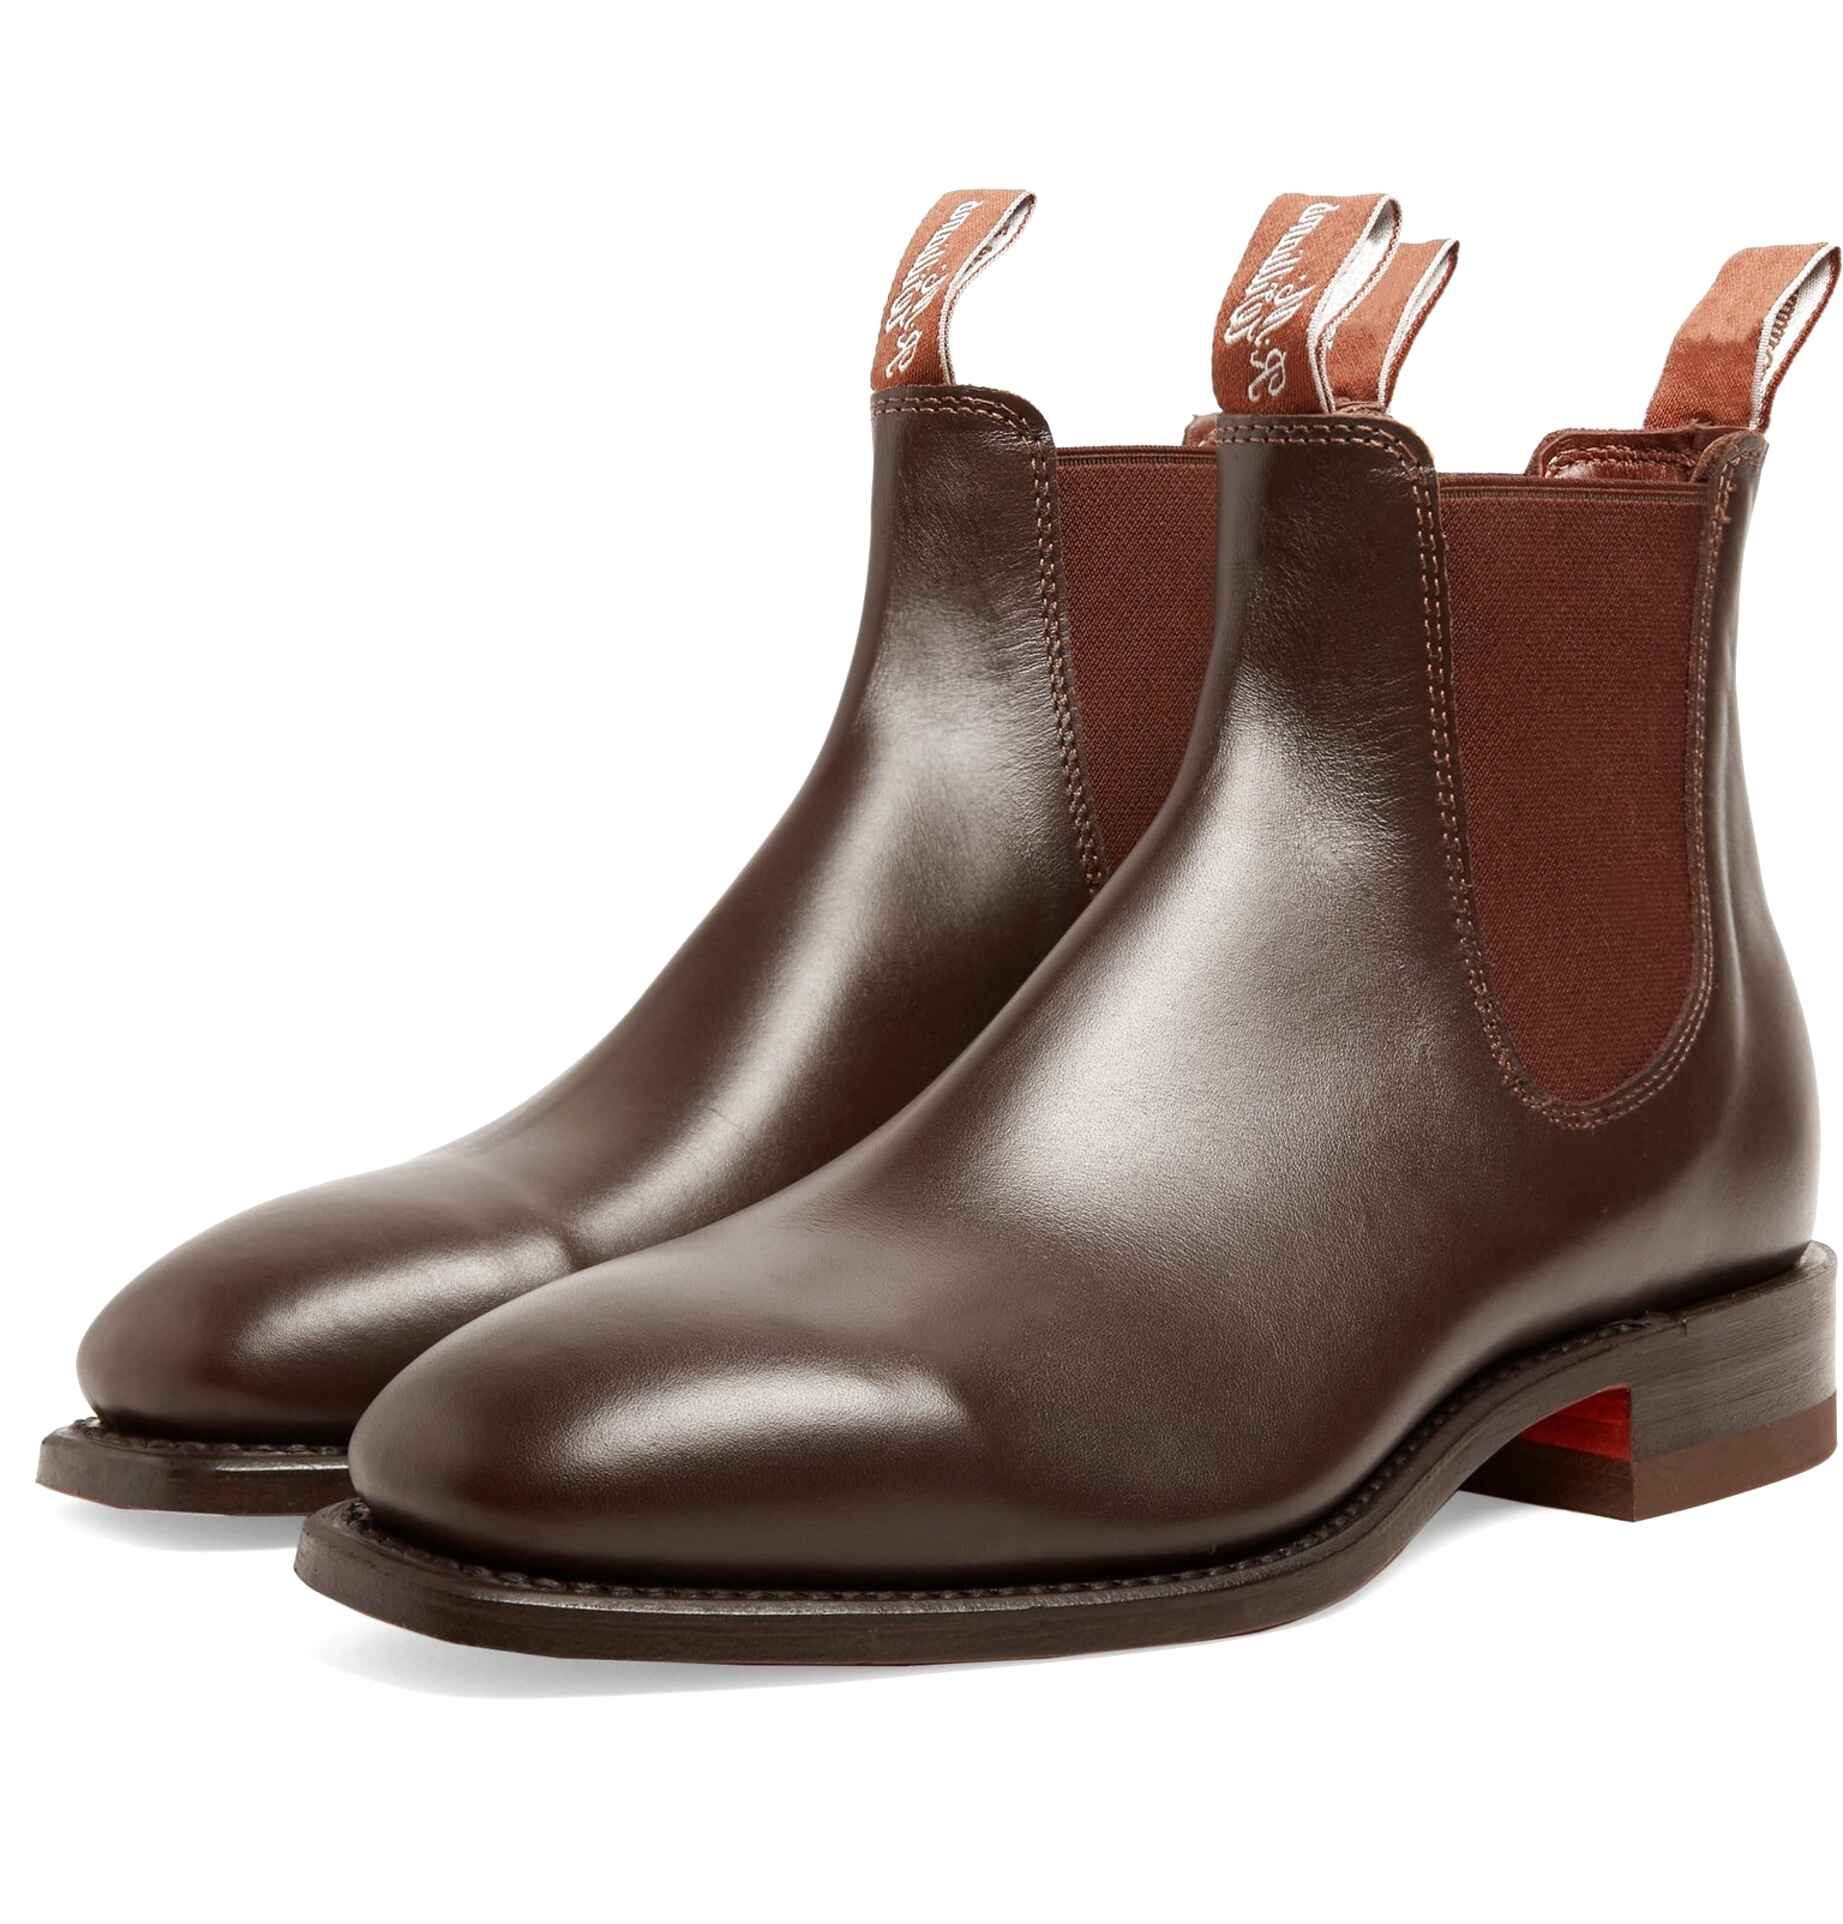 r m williams boots for sale